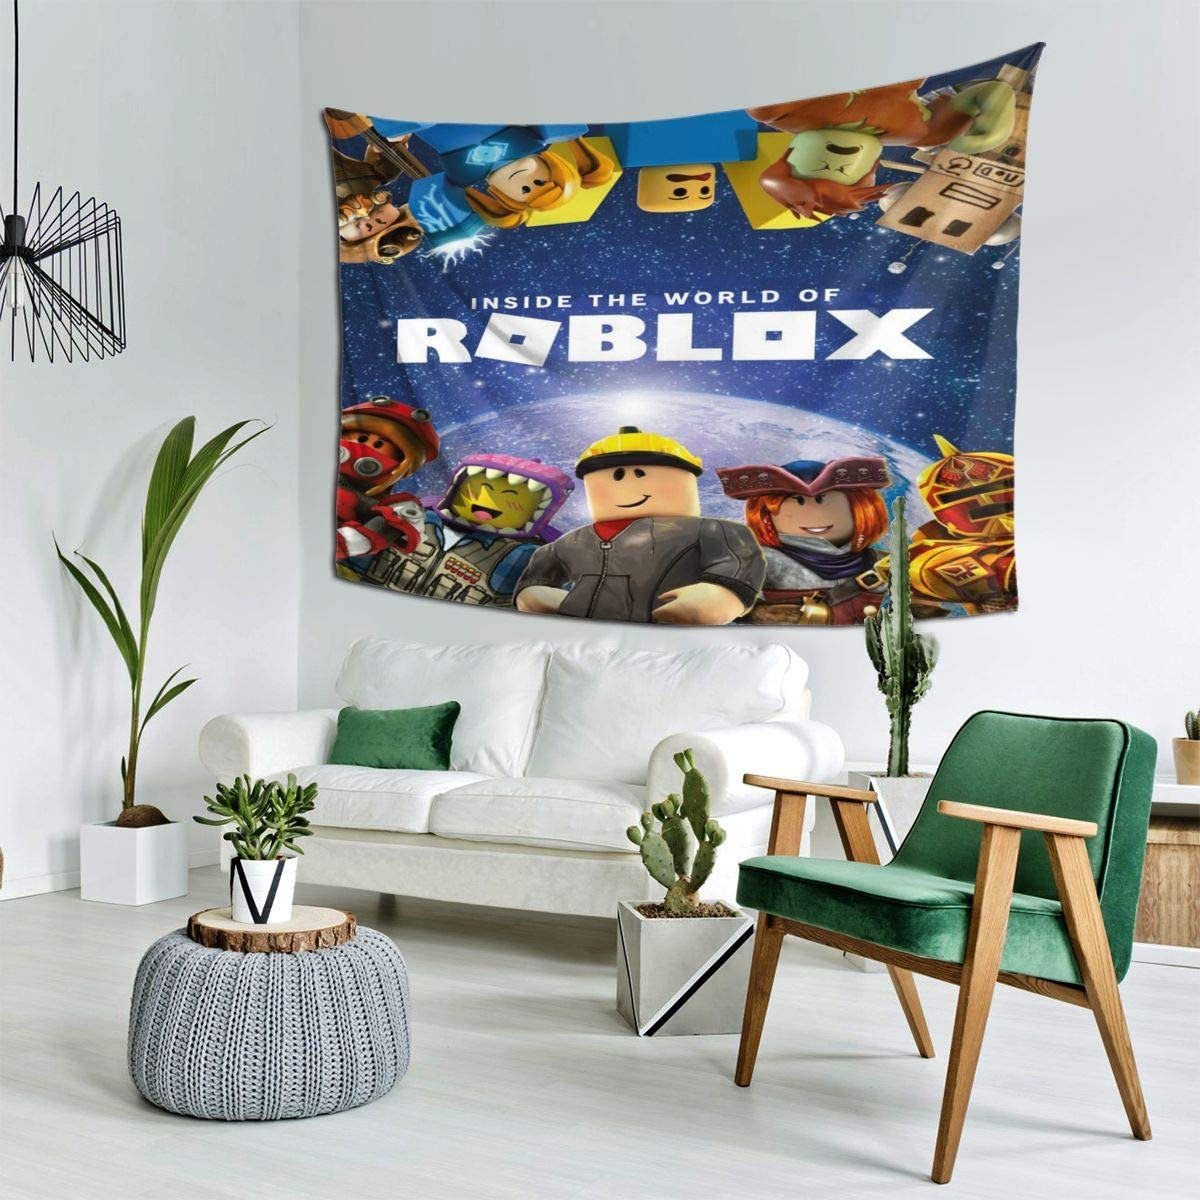 Zalfred Ro-blox Tapestry Wall Hanging Wall Tapestry Trippy for Bedroom,Tapestries Dorm Decor for Living Room,Window Curtain Picnic Mat, 60 X 80 in